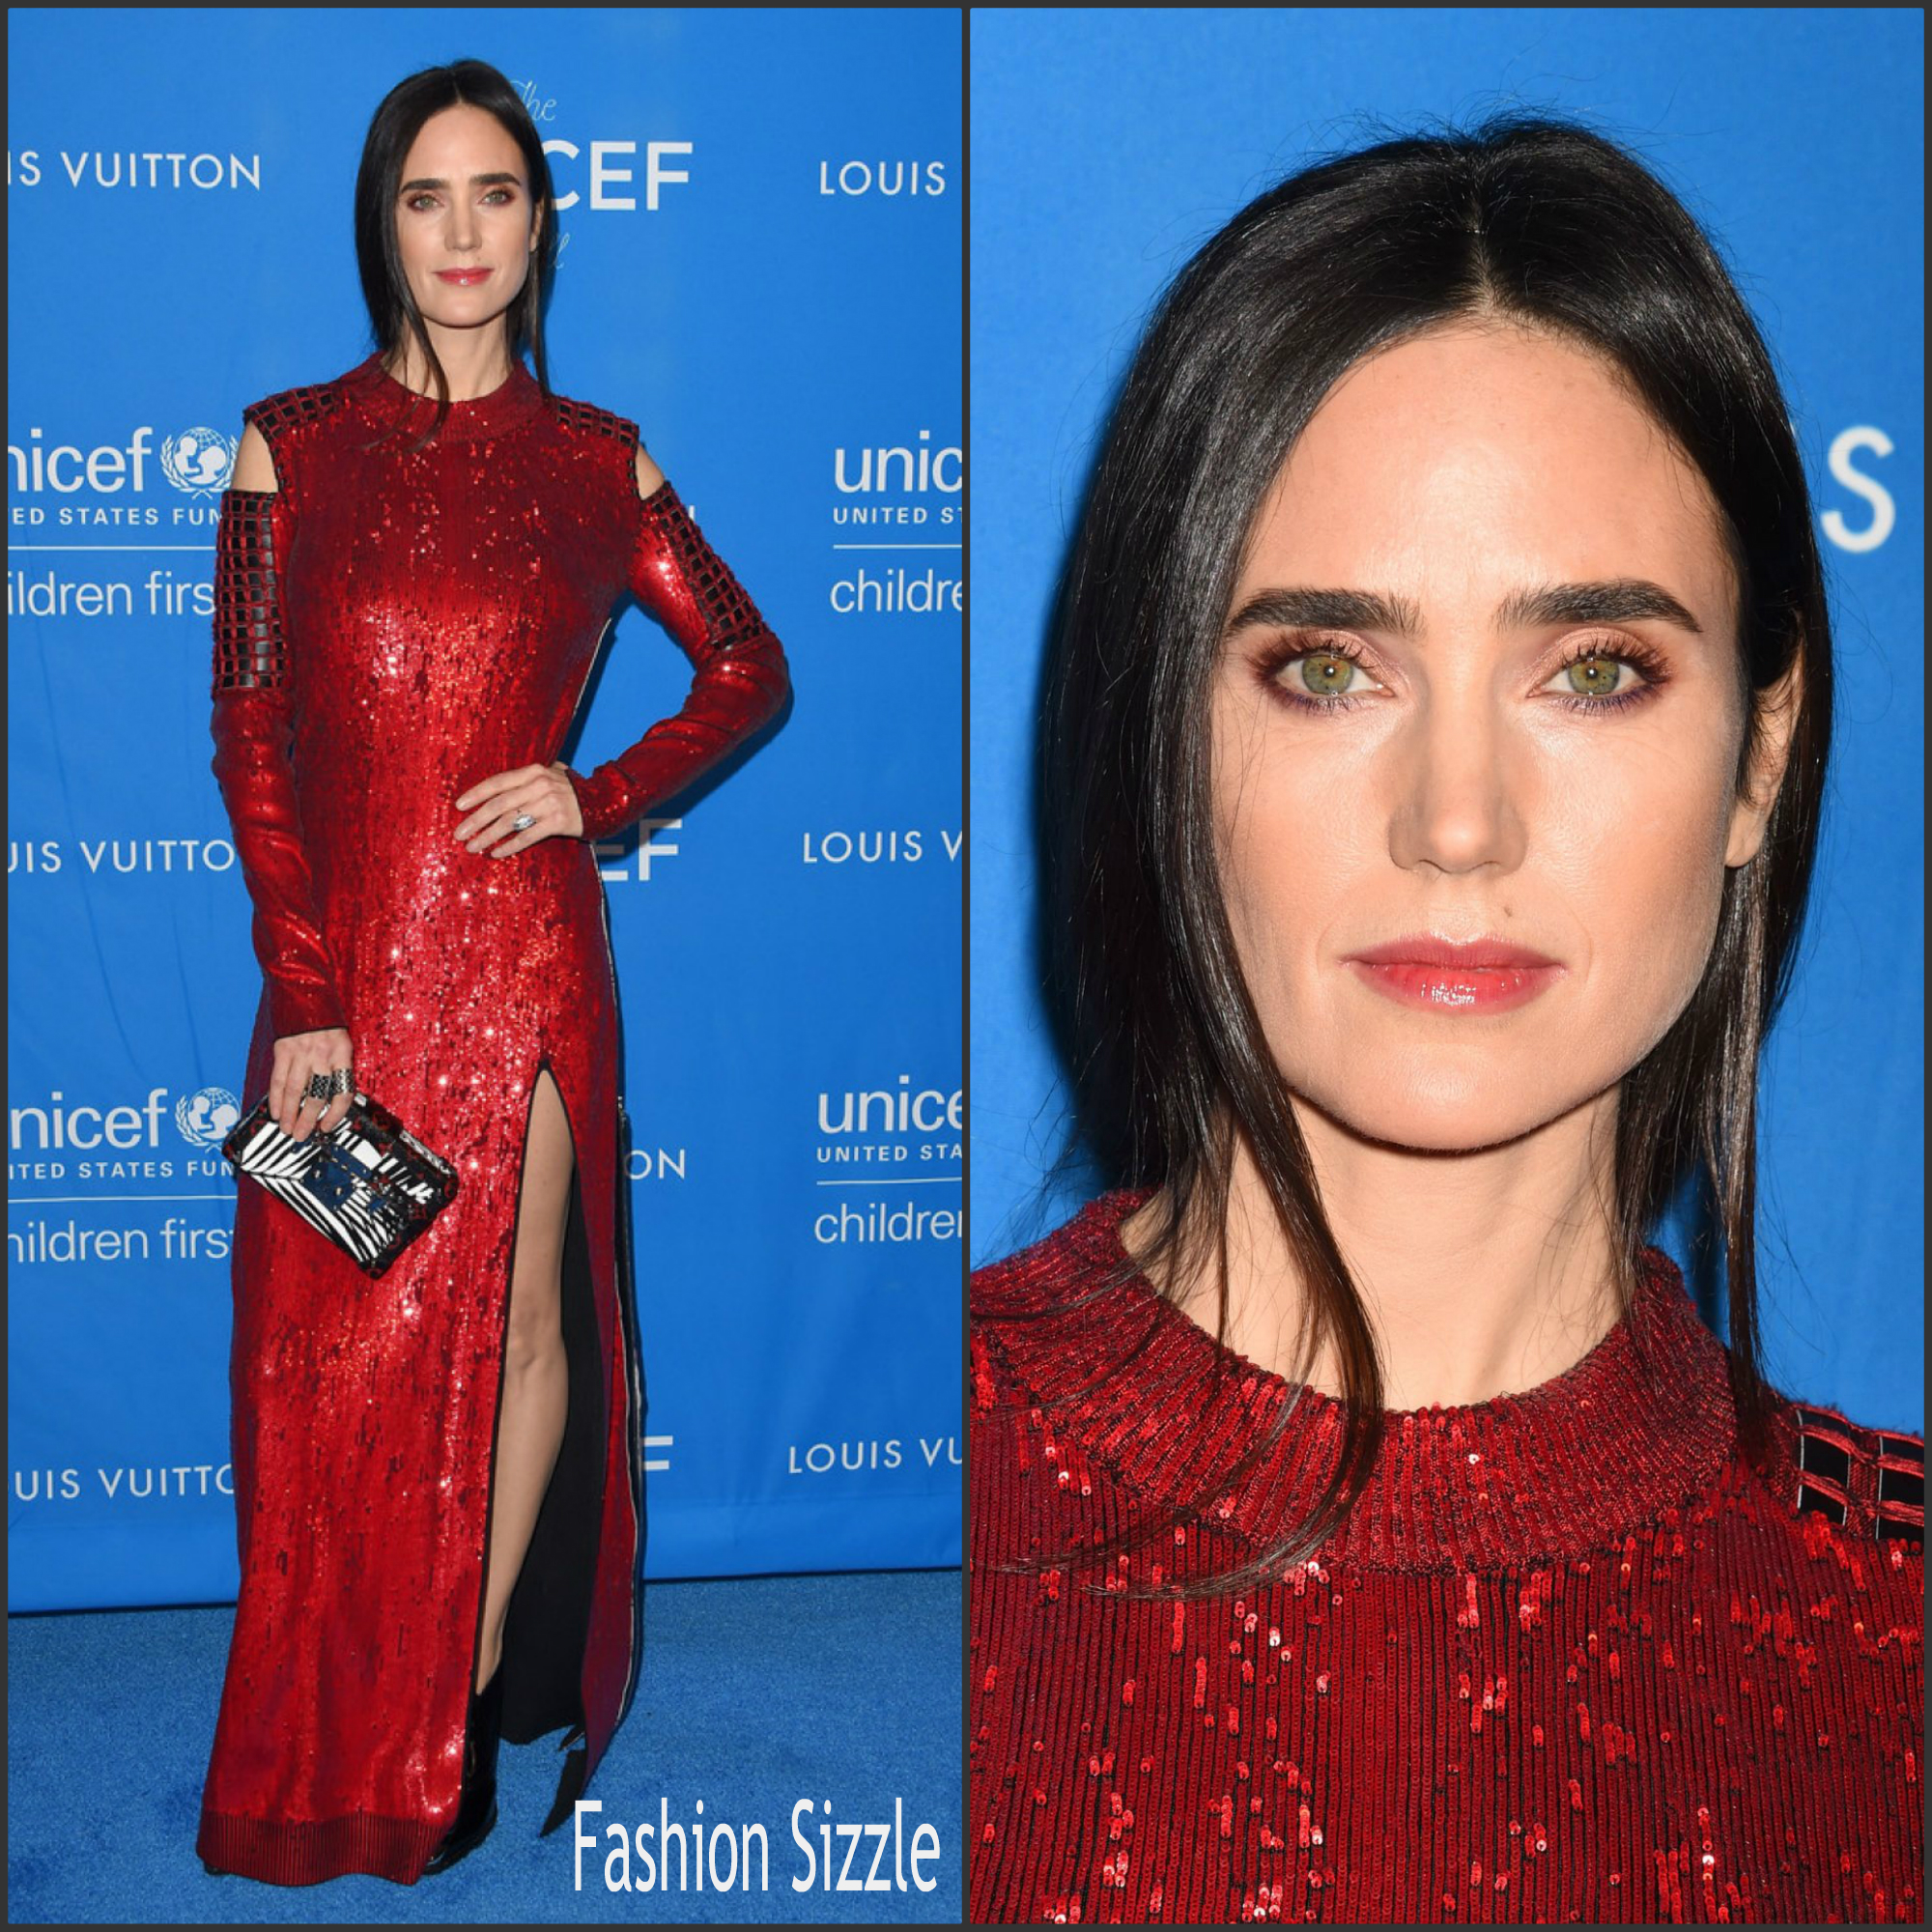 jennifer-connelly-in-louis-vuitton-6th-biennial-unicef-ball